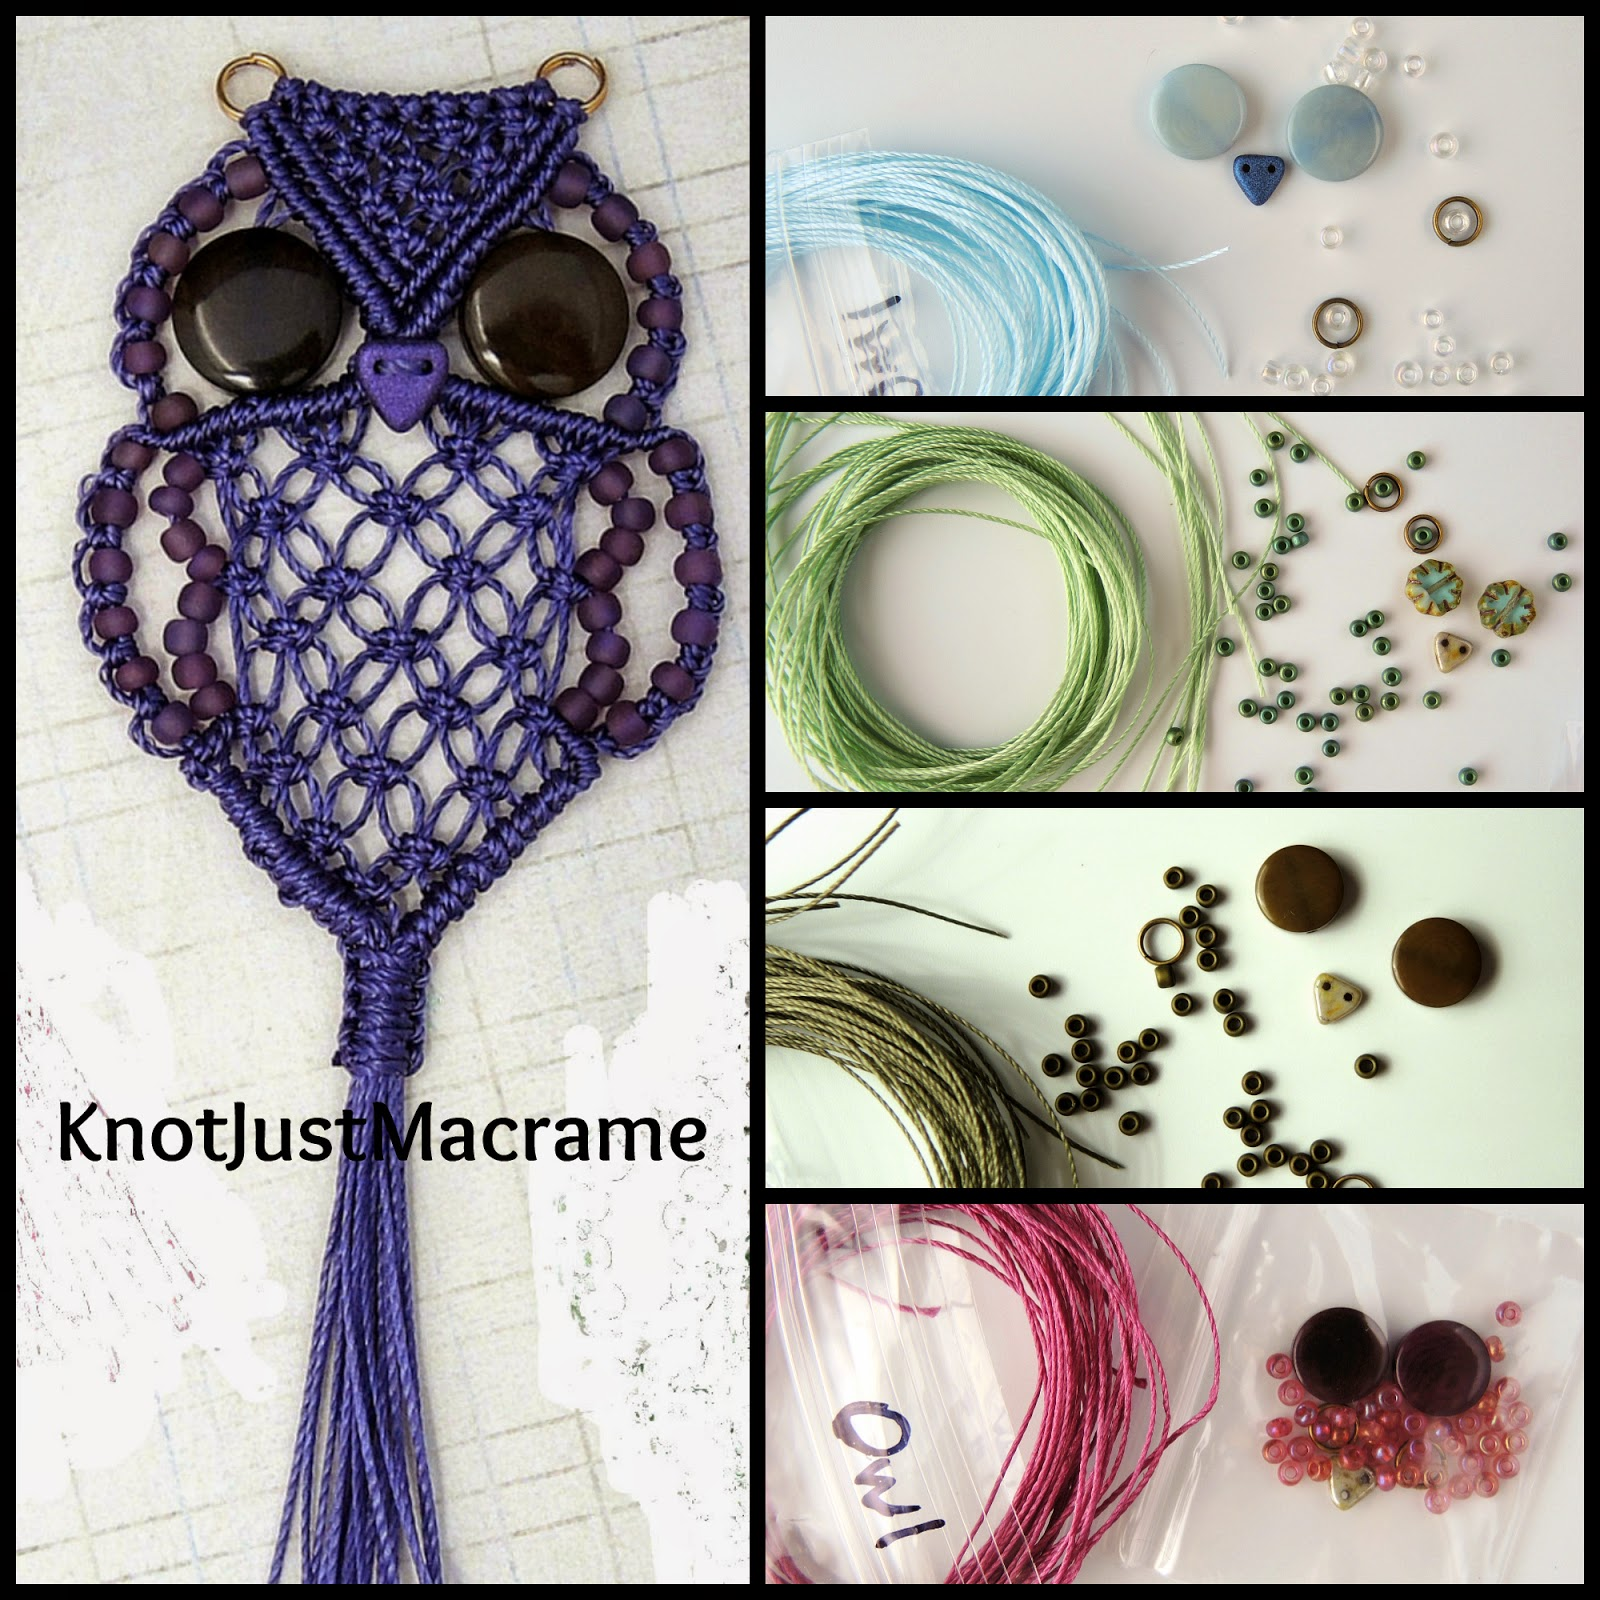 Micro macrame owl tutorial and kits by Knot Just Macrame